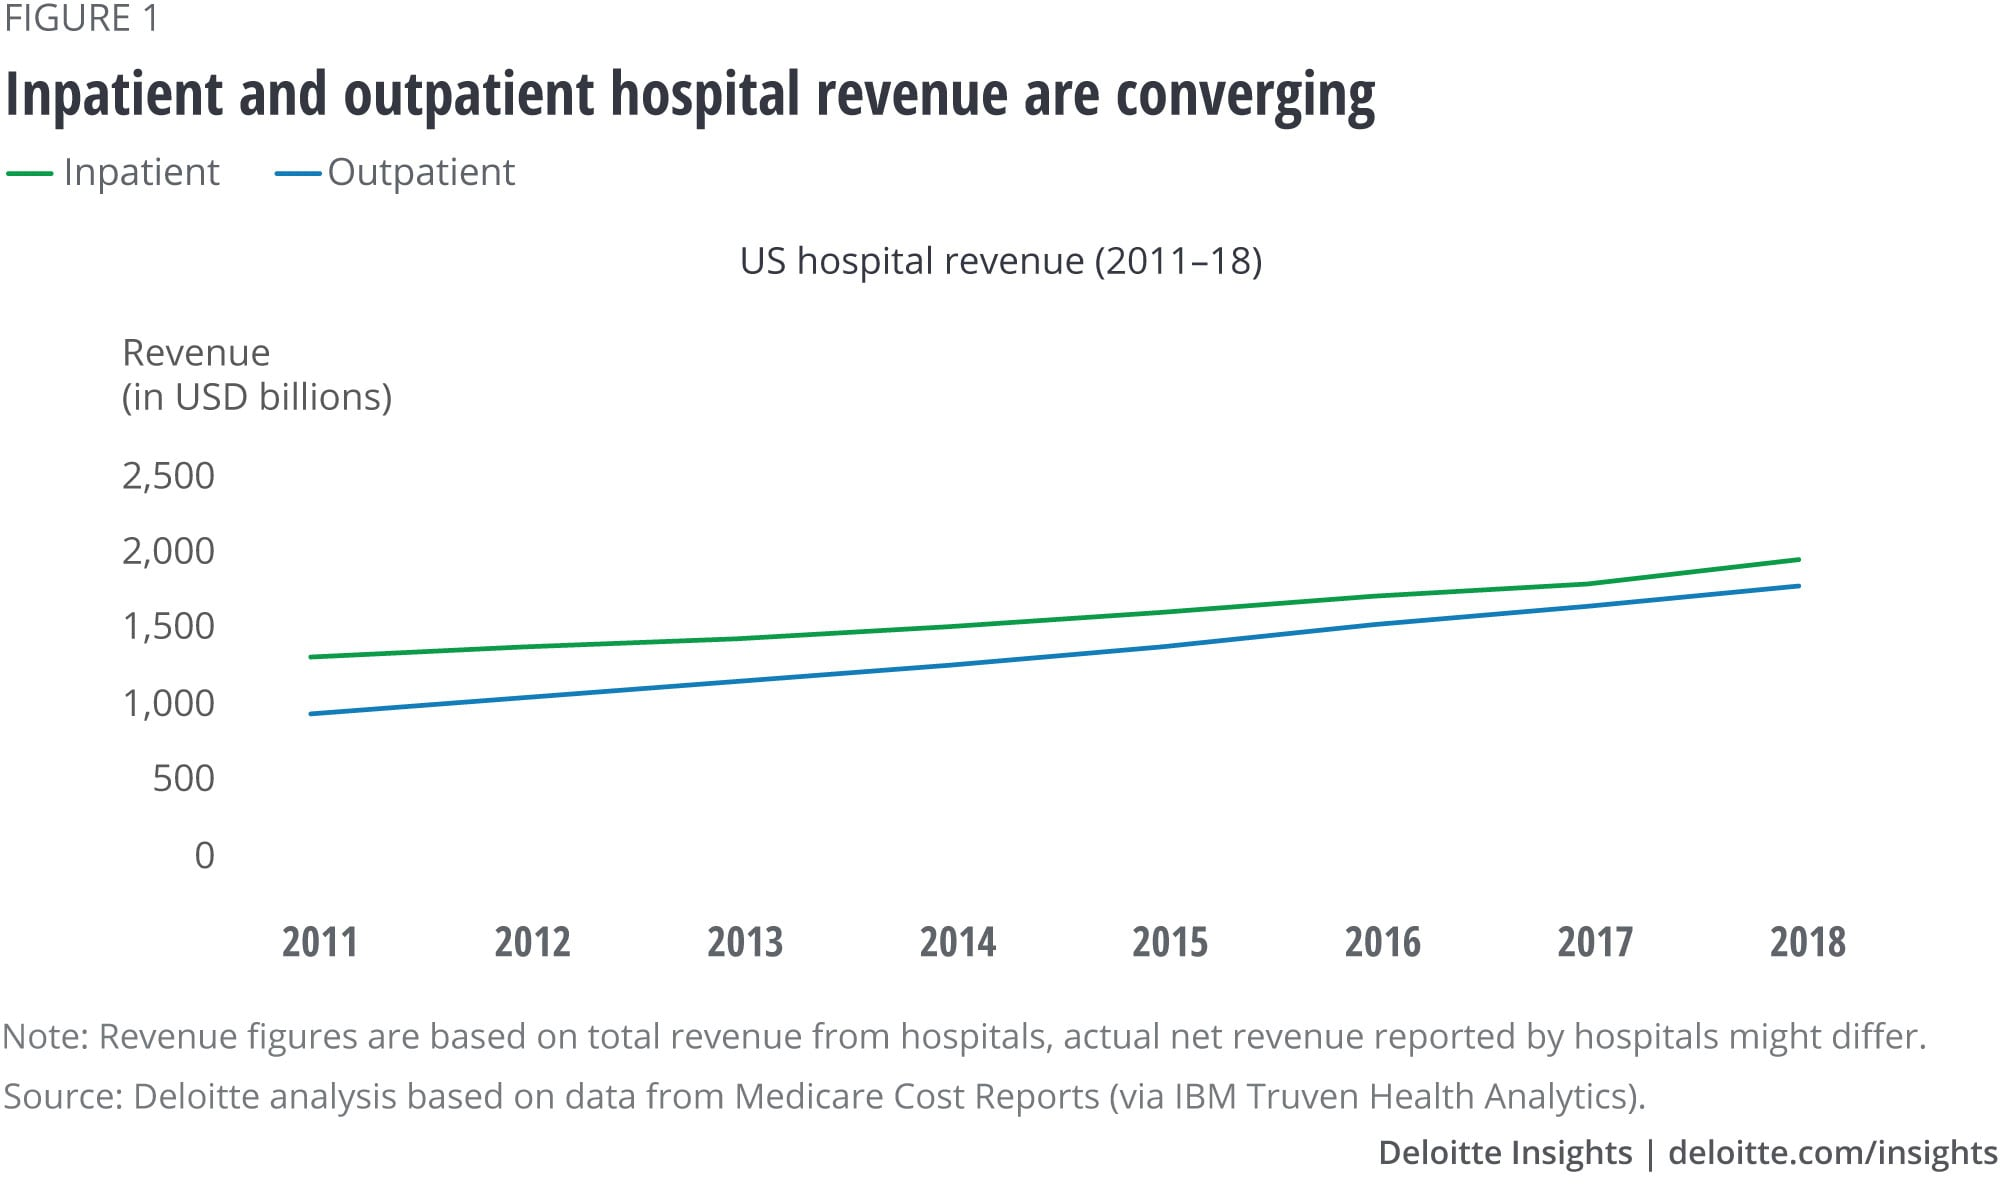 Inpatient and outpatient hospital revenue are converging